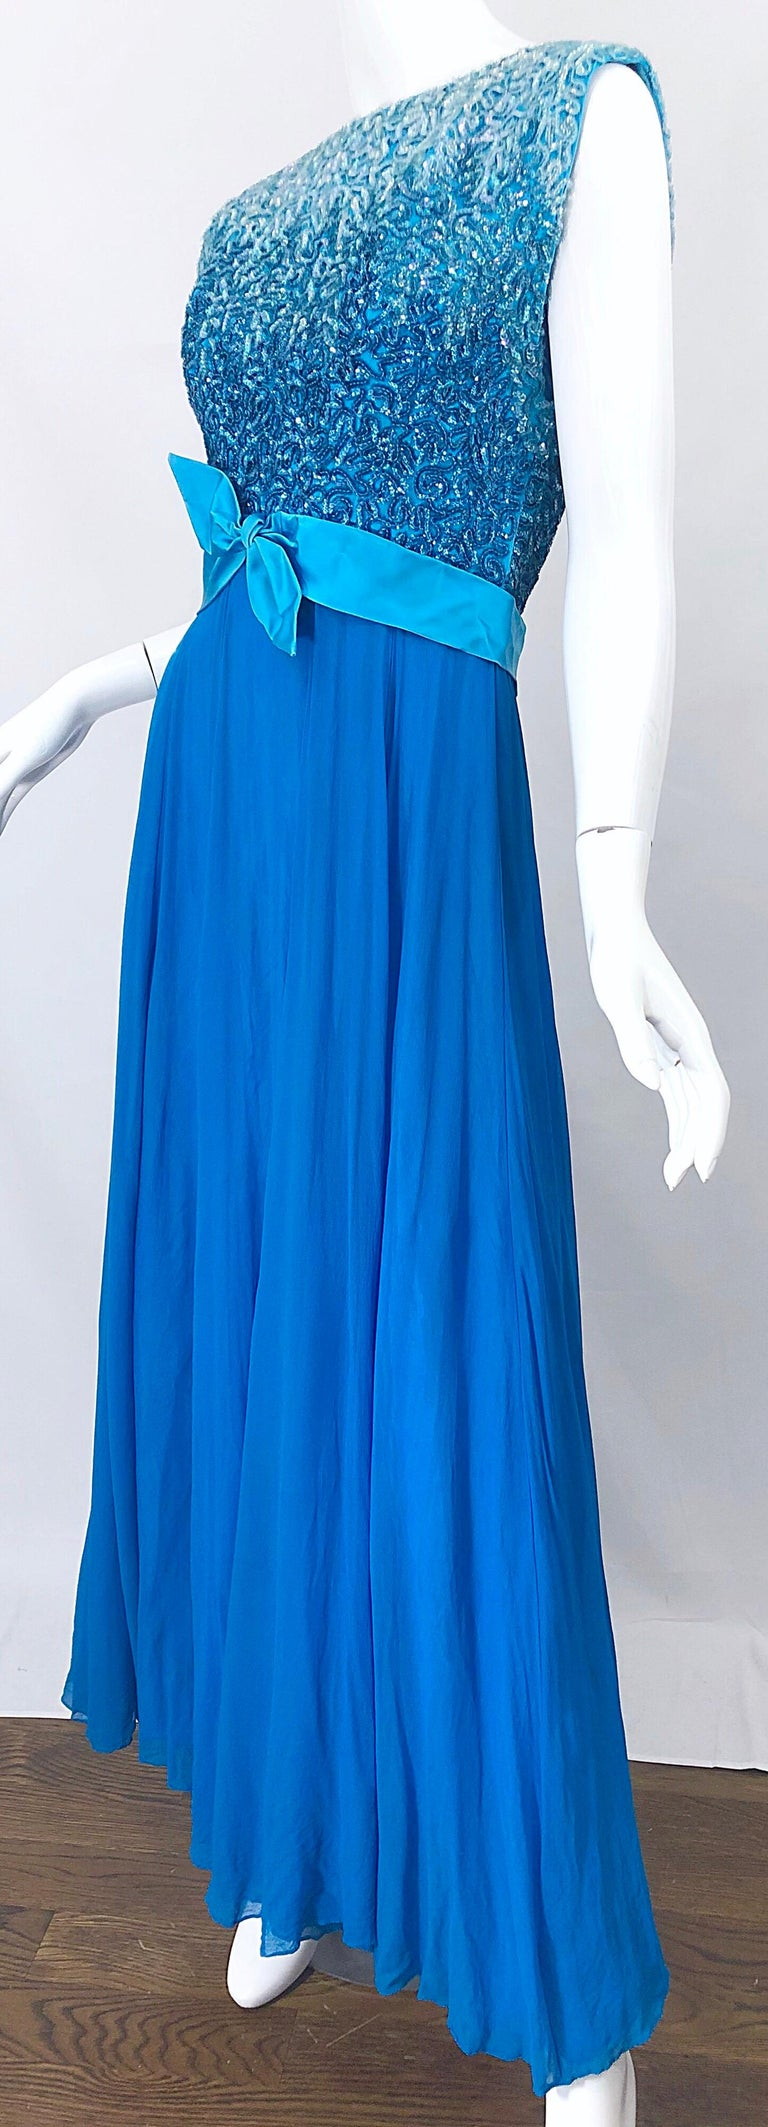 1950s Emma Domb Turquoise Blue Ombre Sequined Silk Chiffon Vintage 50s Gown For Sale 7